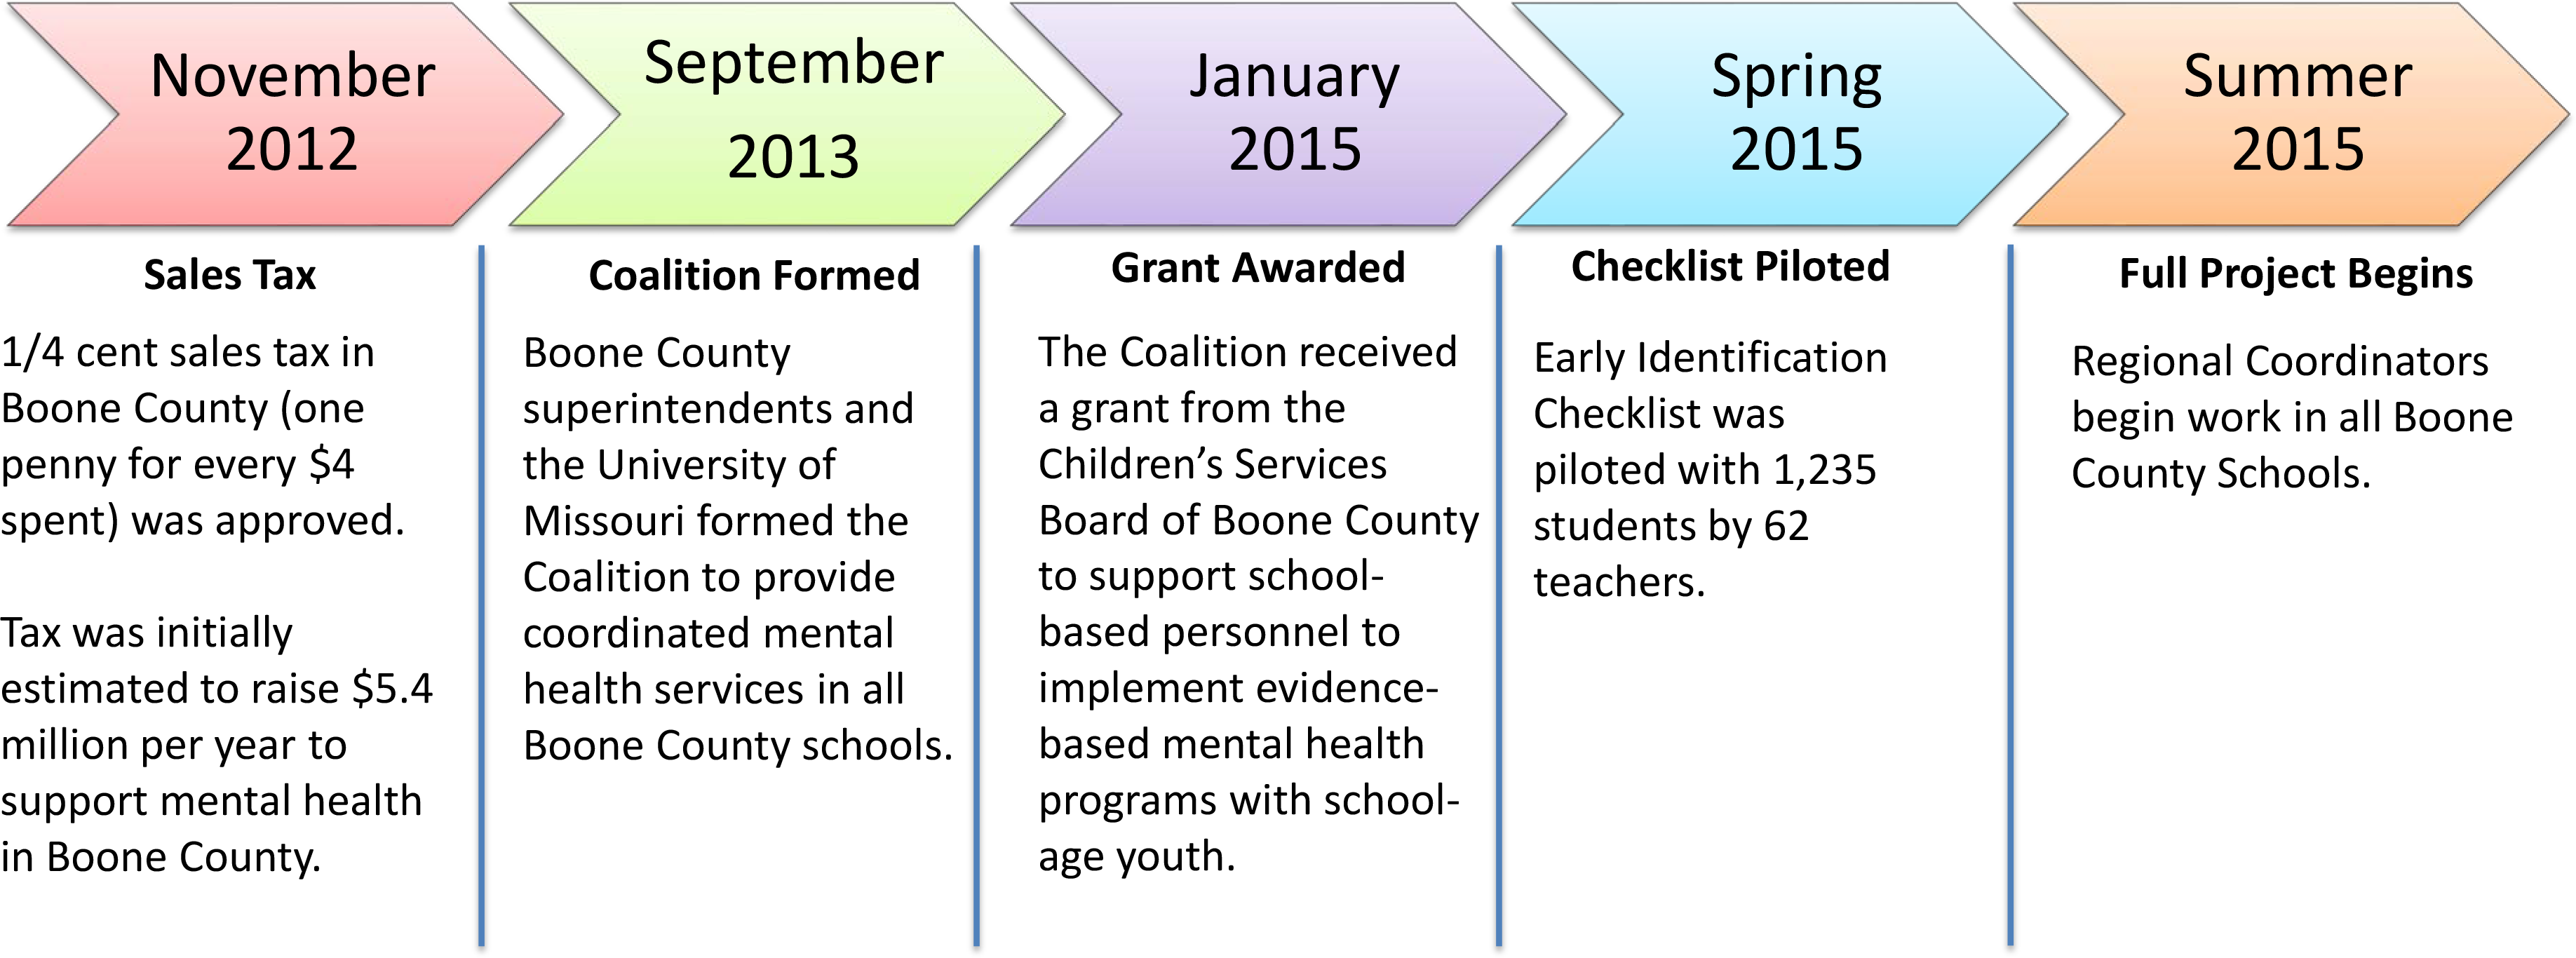 Coalition Timeline Graphic